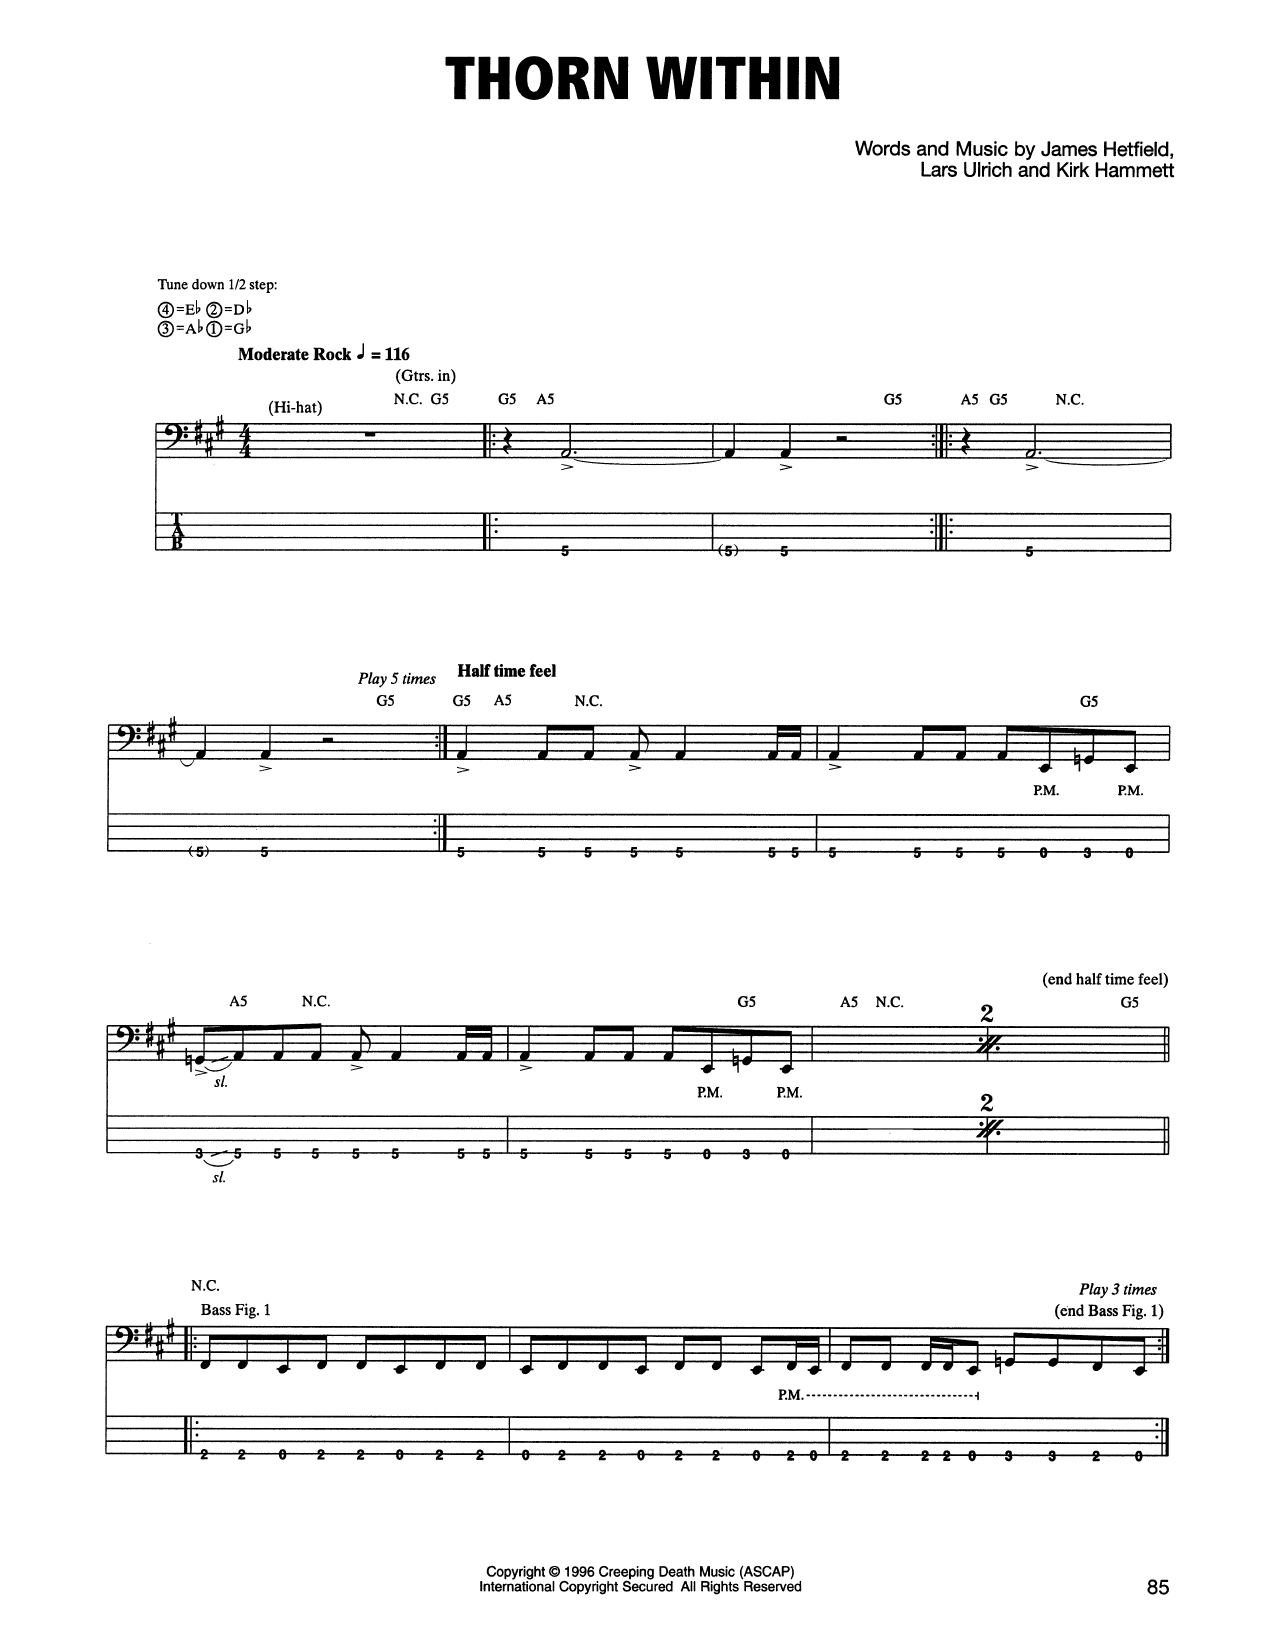 Metallica The Thorn Within Sheet Music Notes Chords Printable